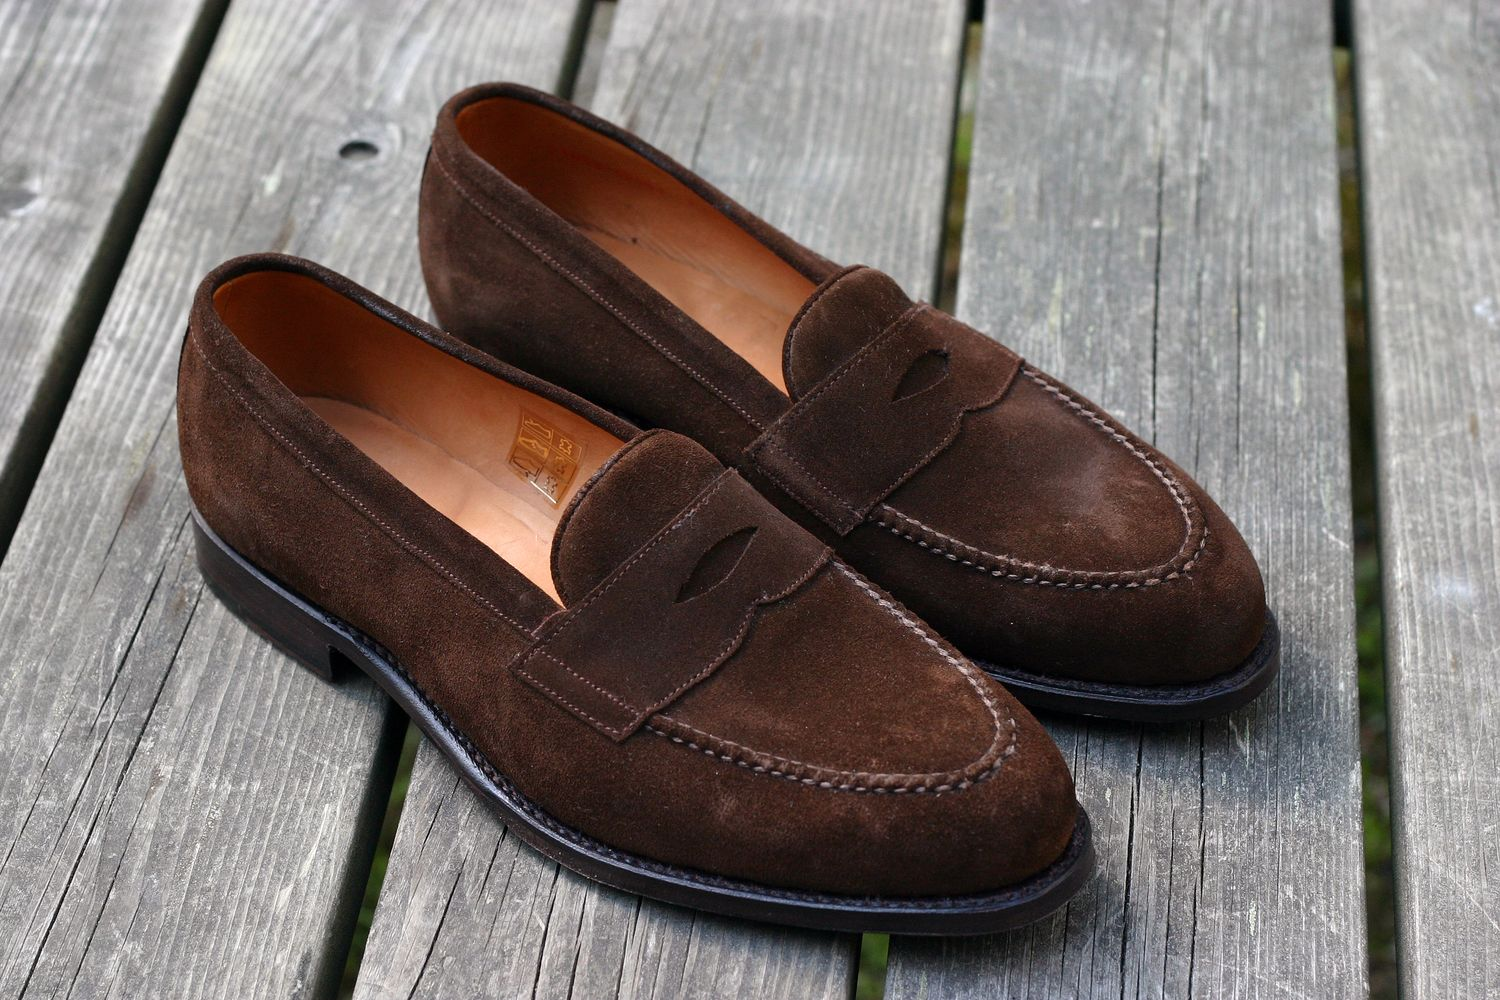 Item of the Week: Brown Suede Penny Loafers